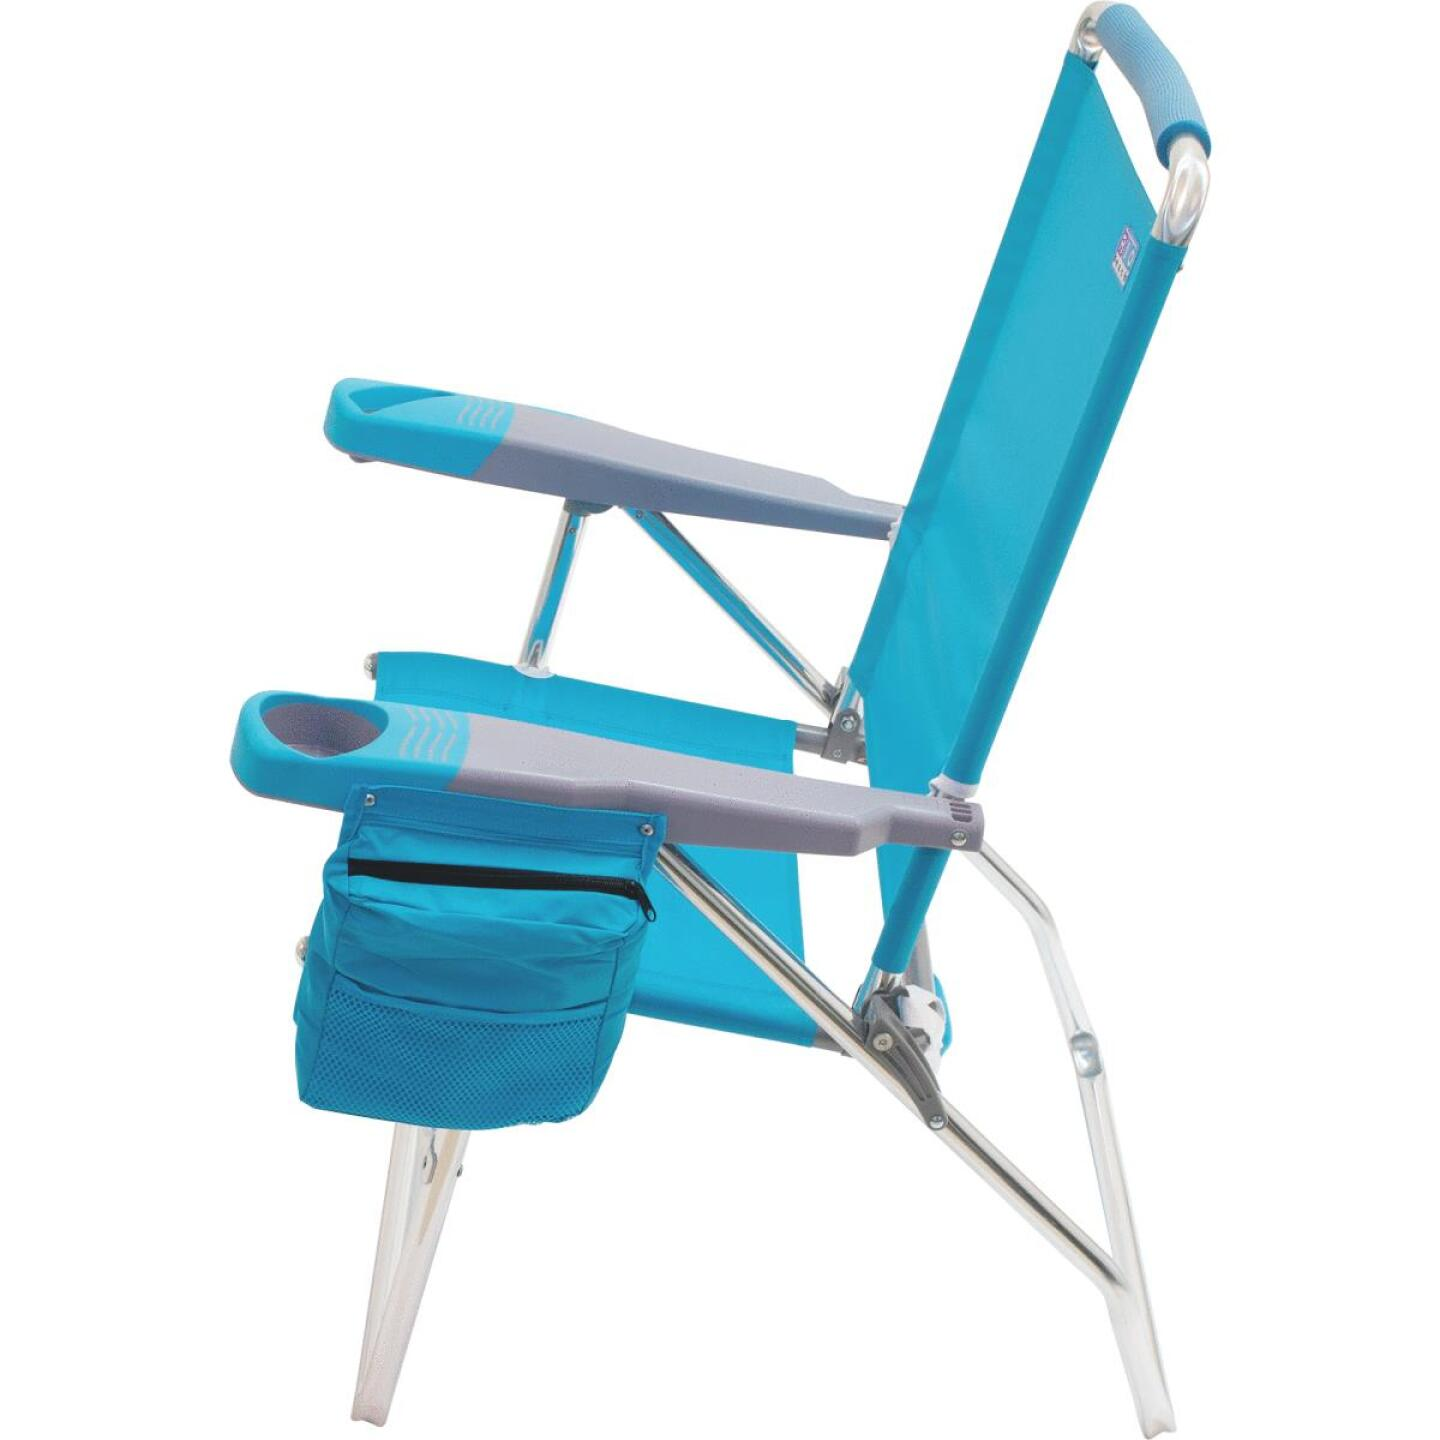 Rio Brands 4-Position Aluminum Folding Beach Chair with Cooler Image 7